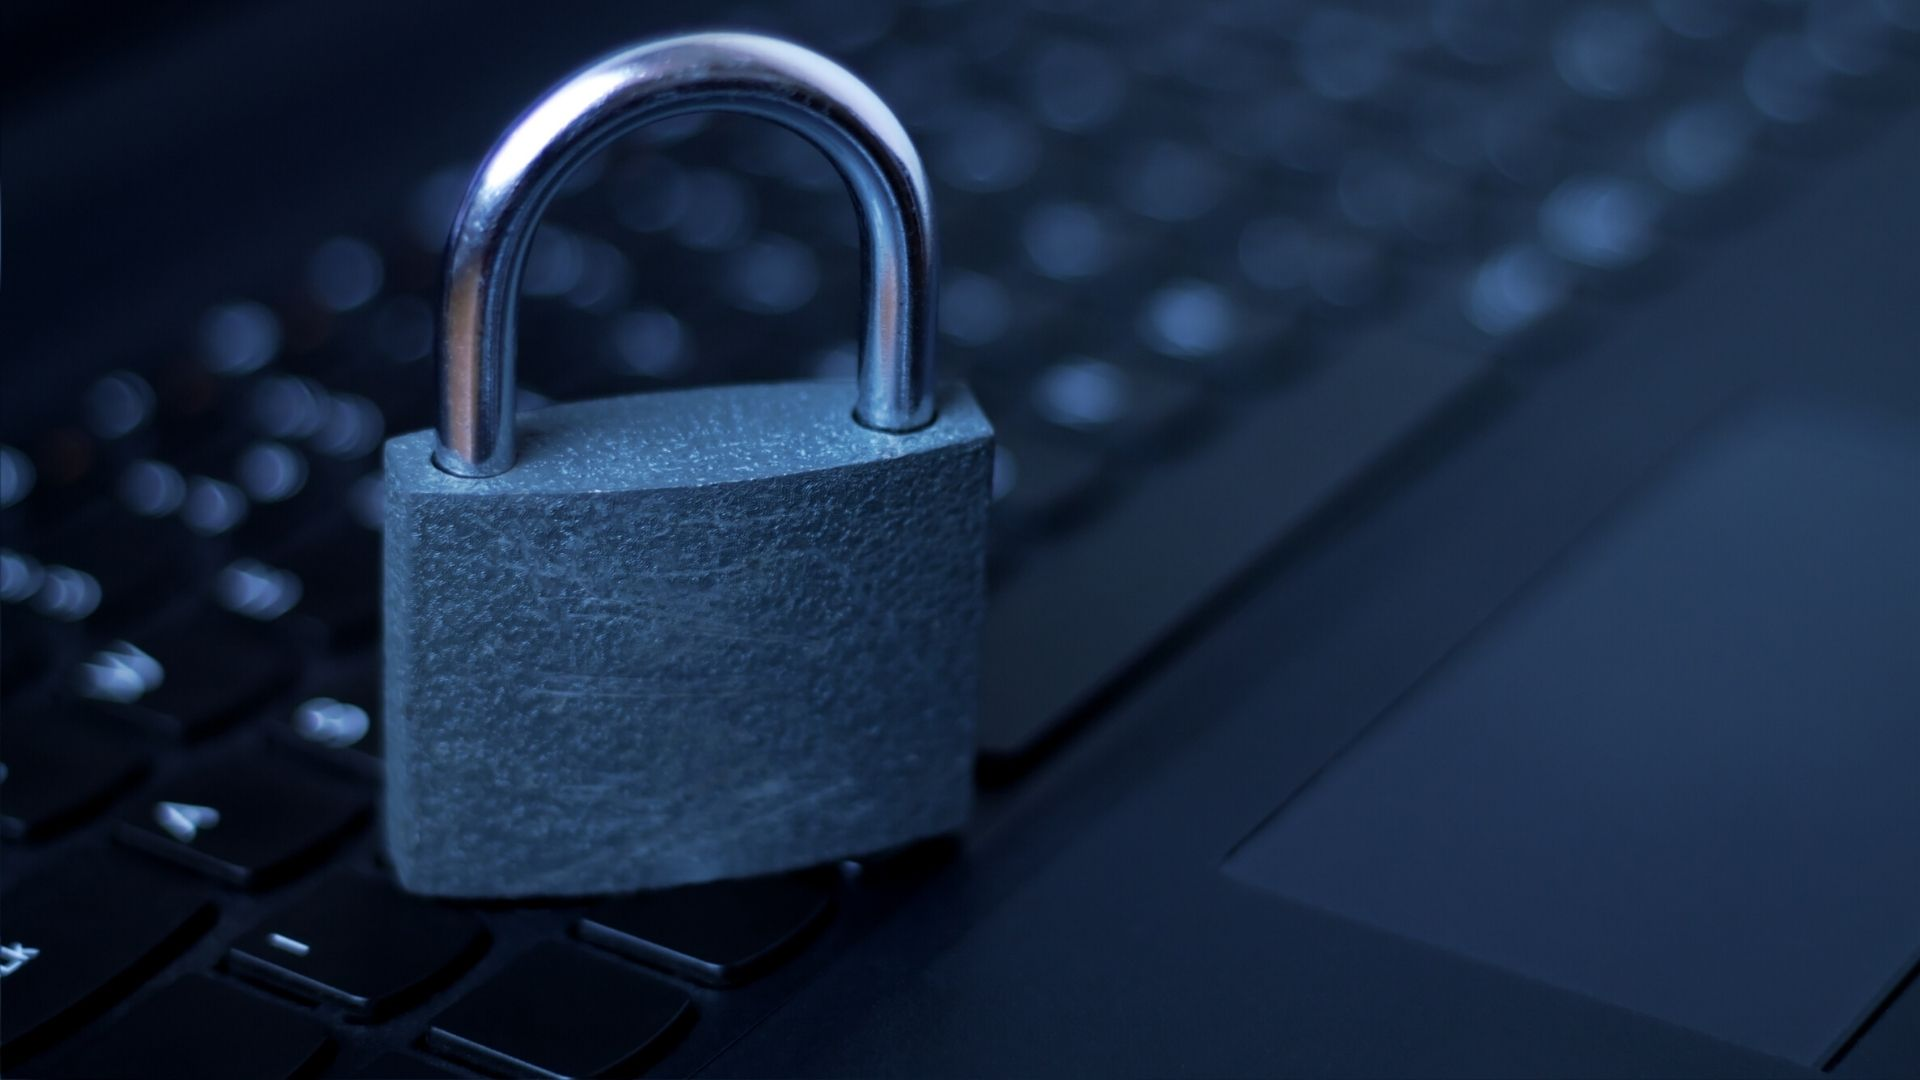 What You Need to Know About Secure Video Sharing